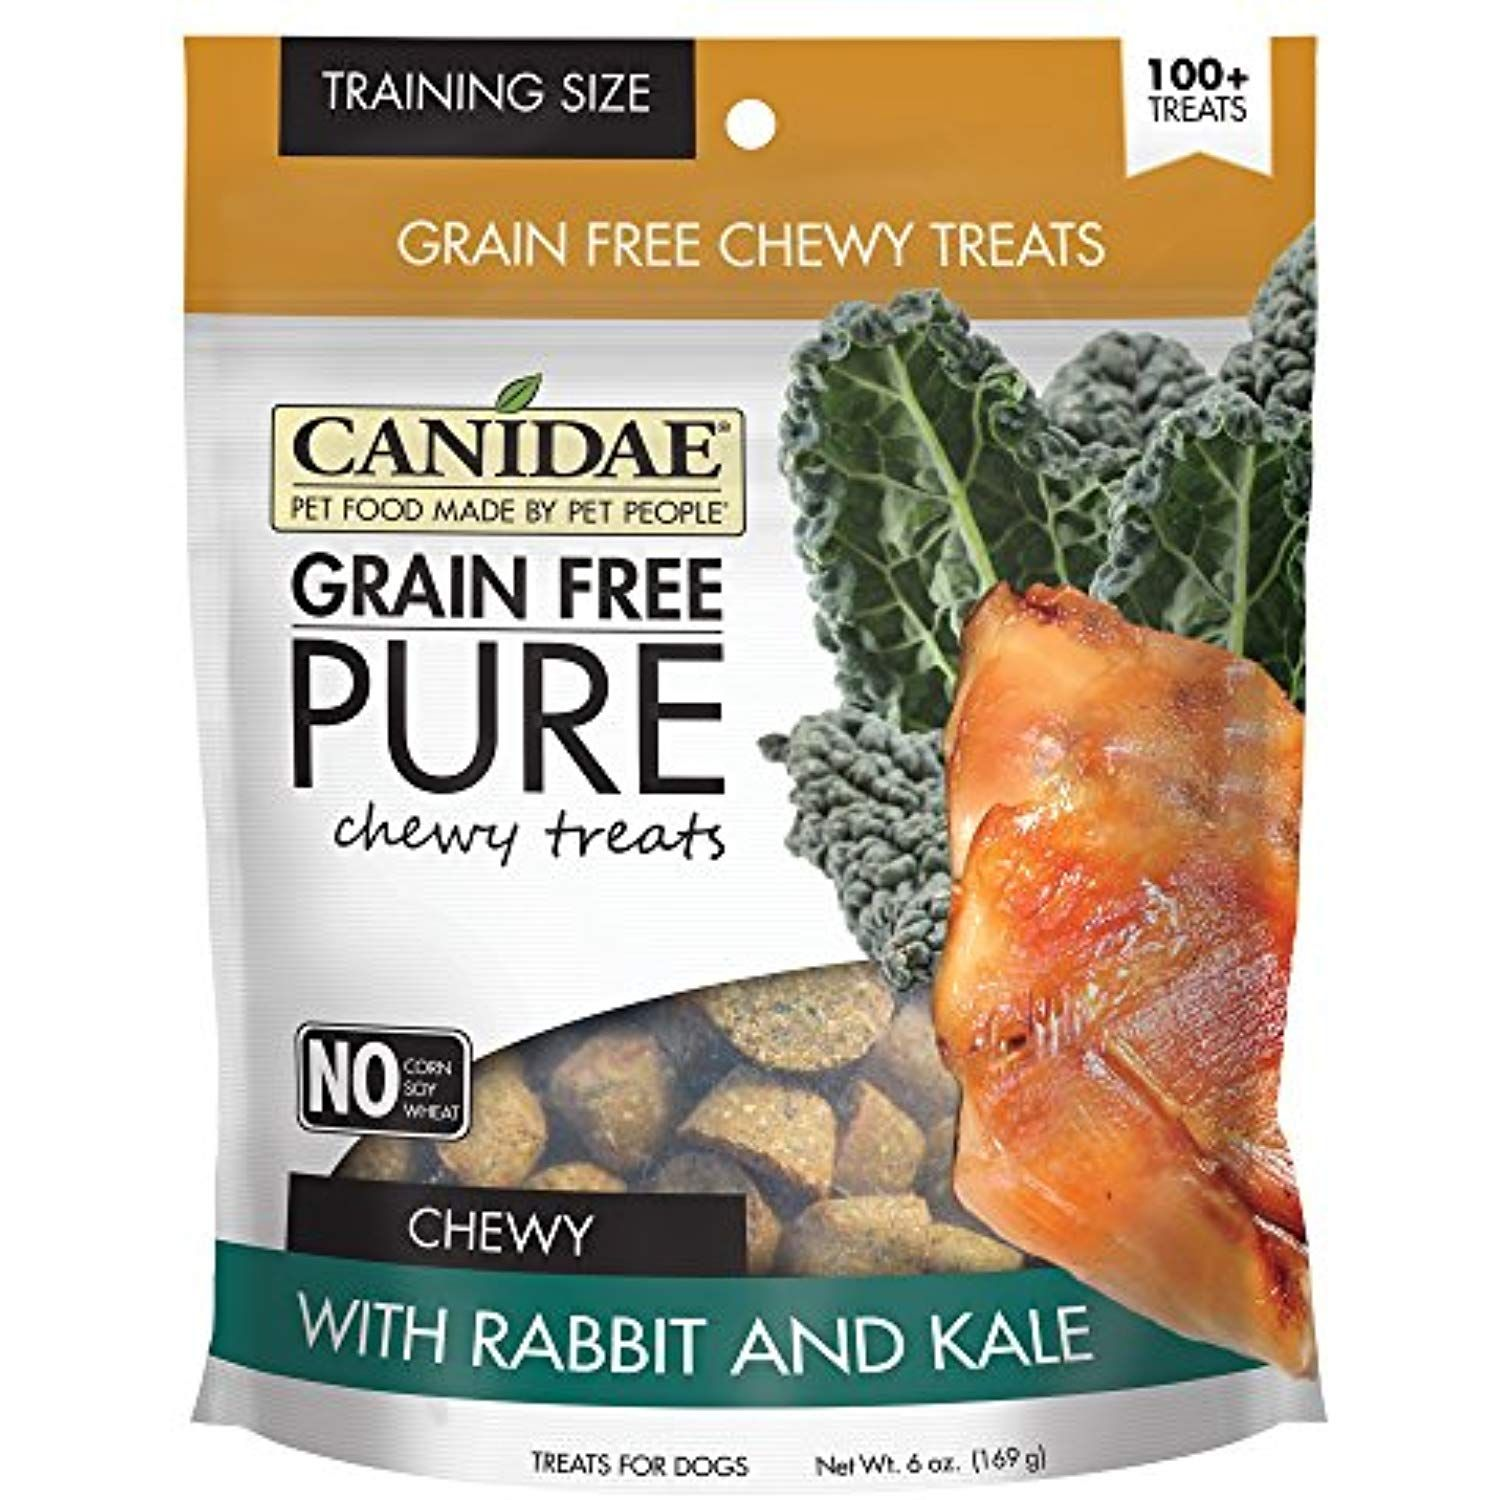 Canidae grain free pure chewy dog treats with rabbit dogs